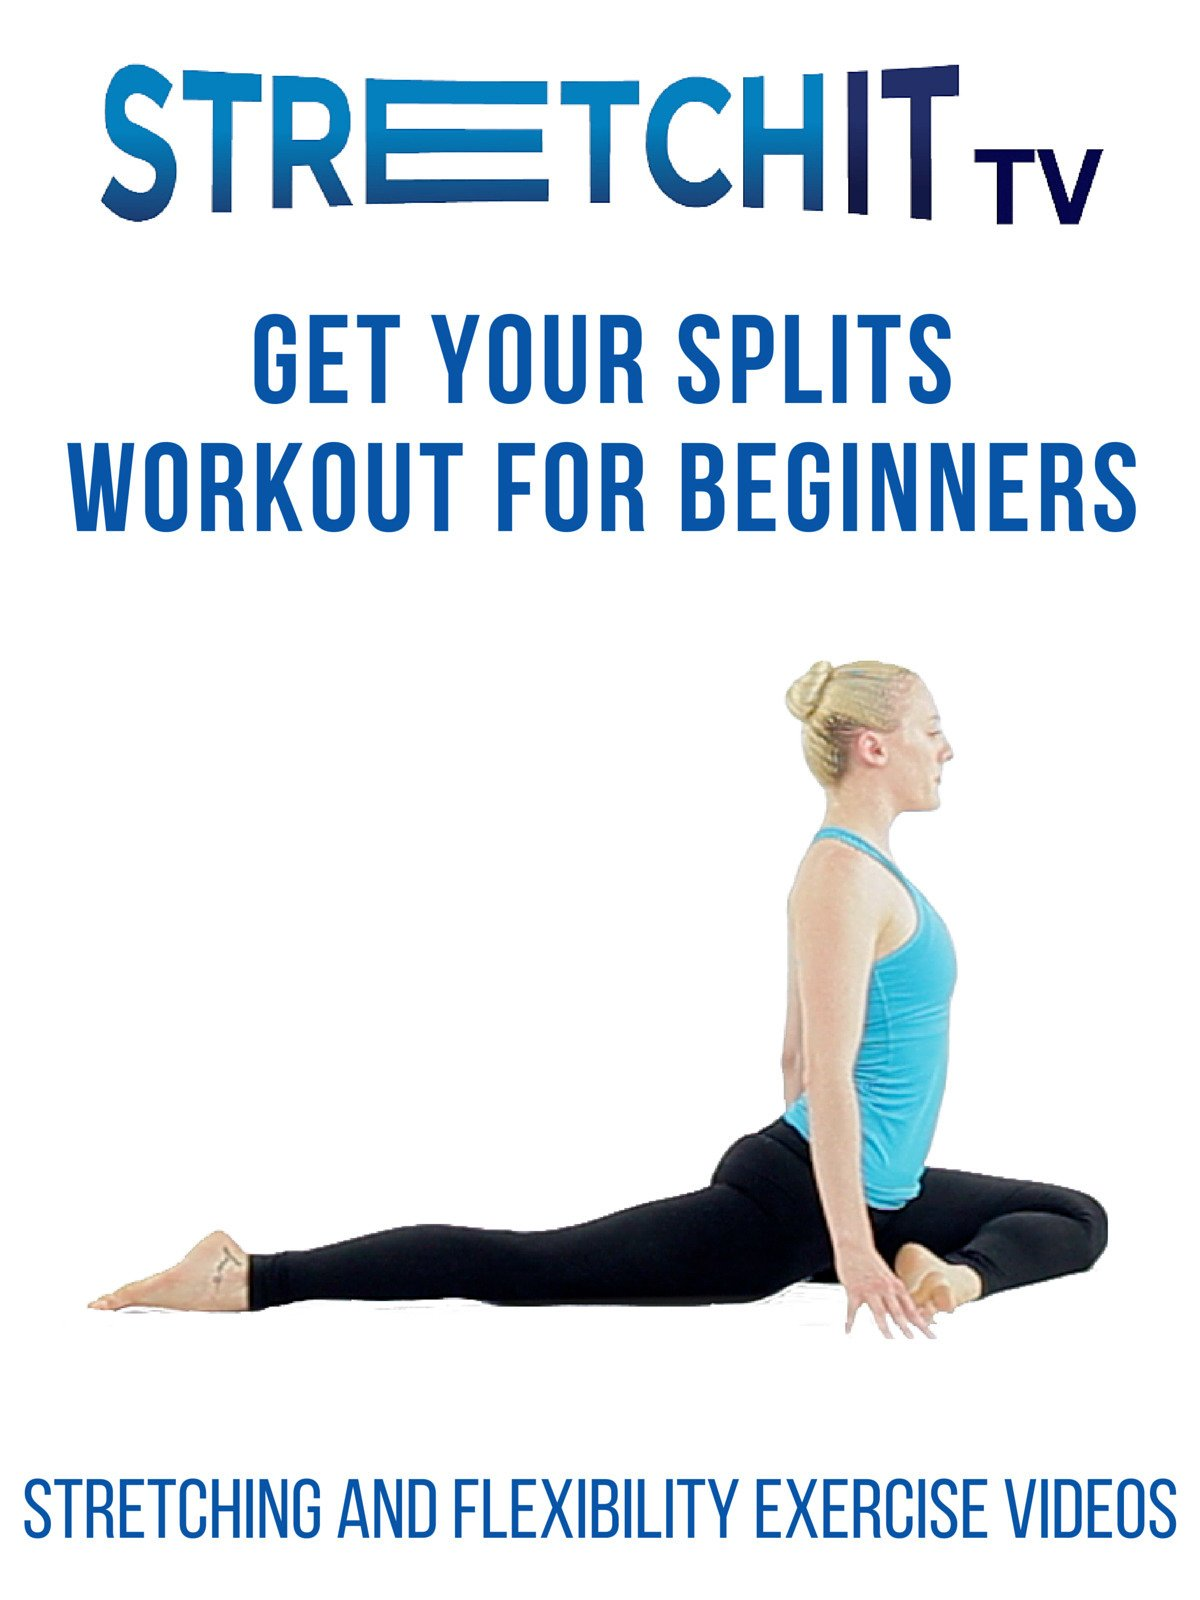 Watch Stretching And Flexibility Exercise Videos Get Your Splits Workout For Beginners Prime Video